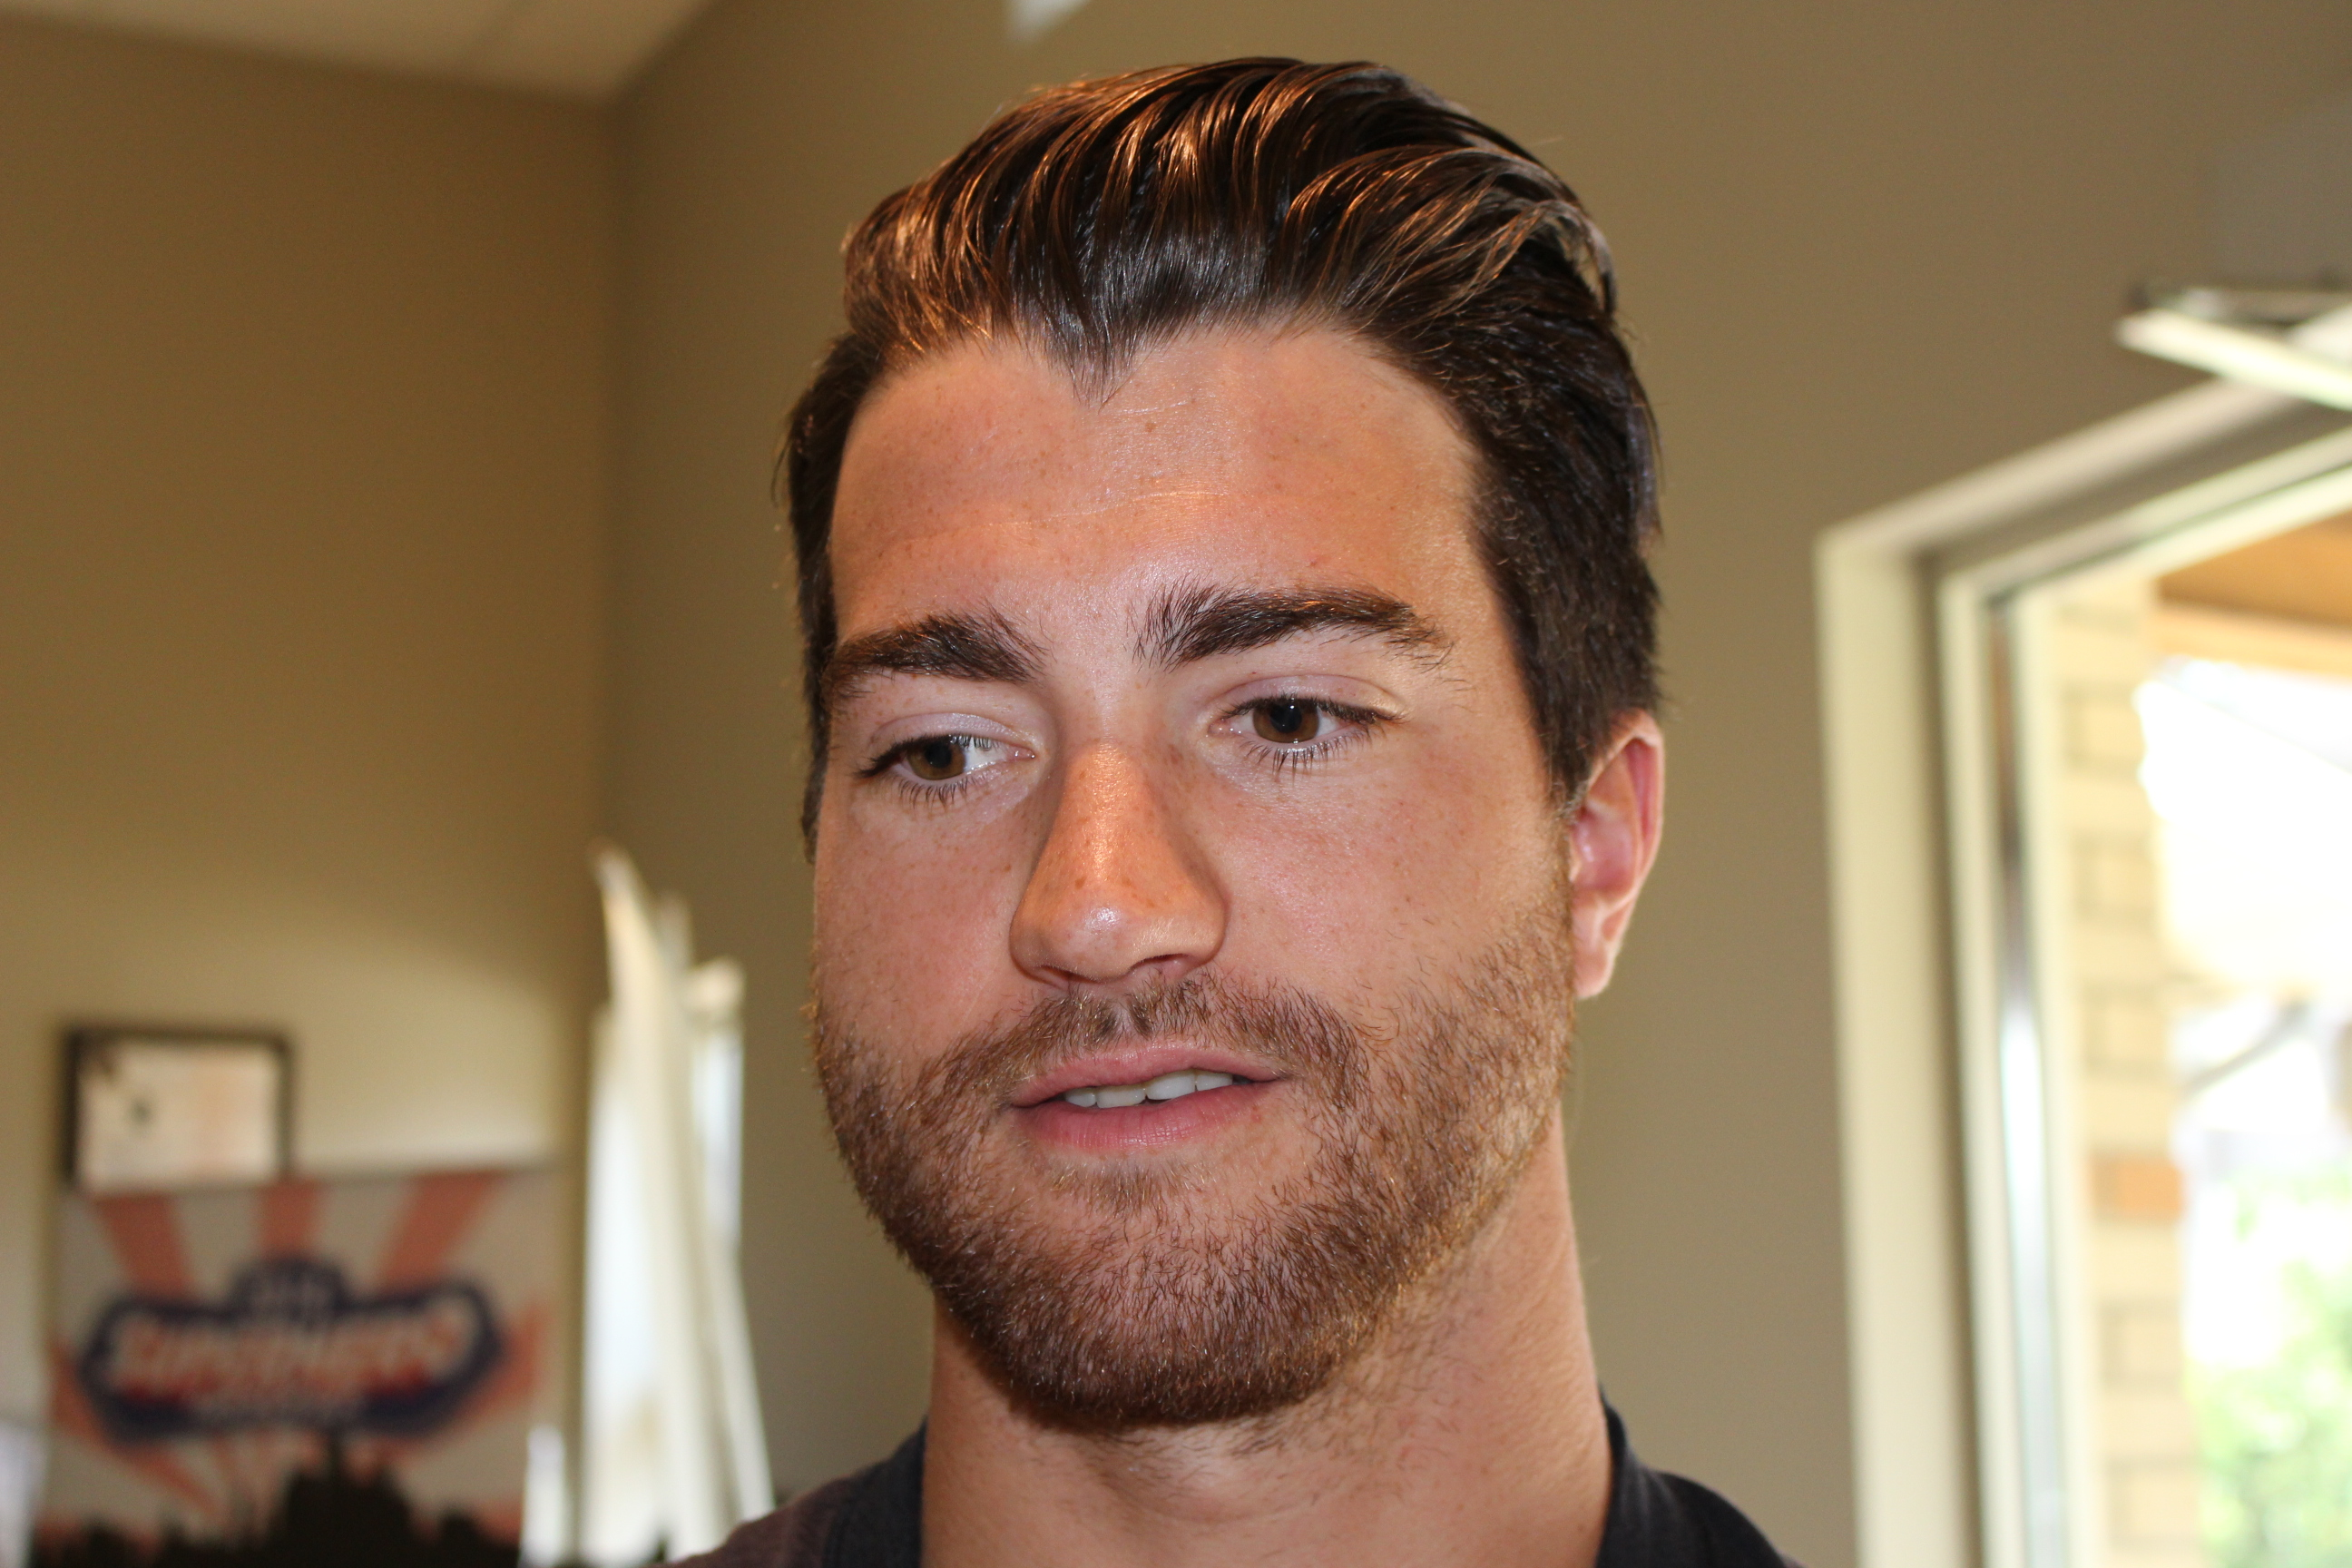 Calgary Flames defenceman T.J. Brodie. (Photo by Adelle Loiselle.)